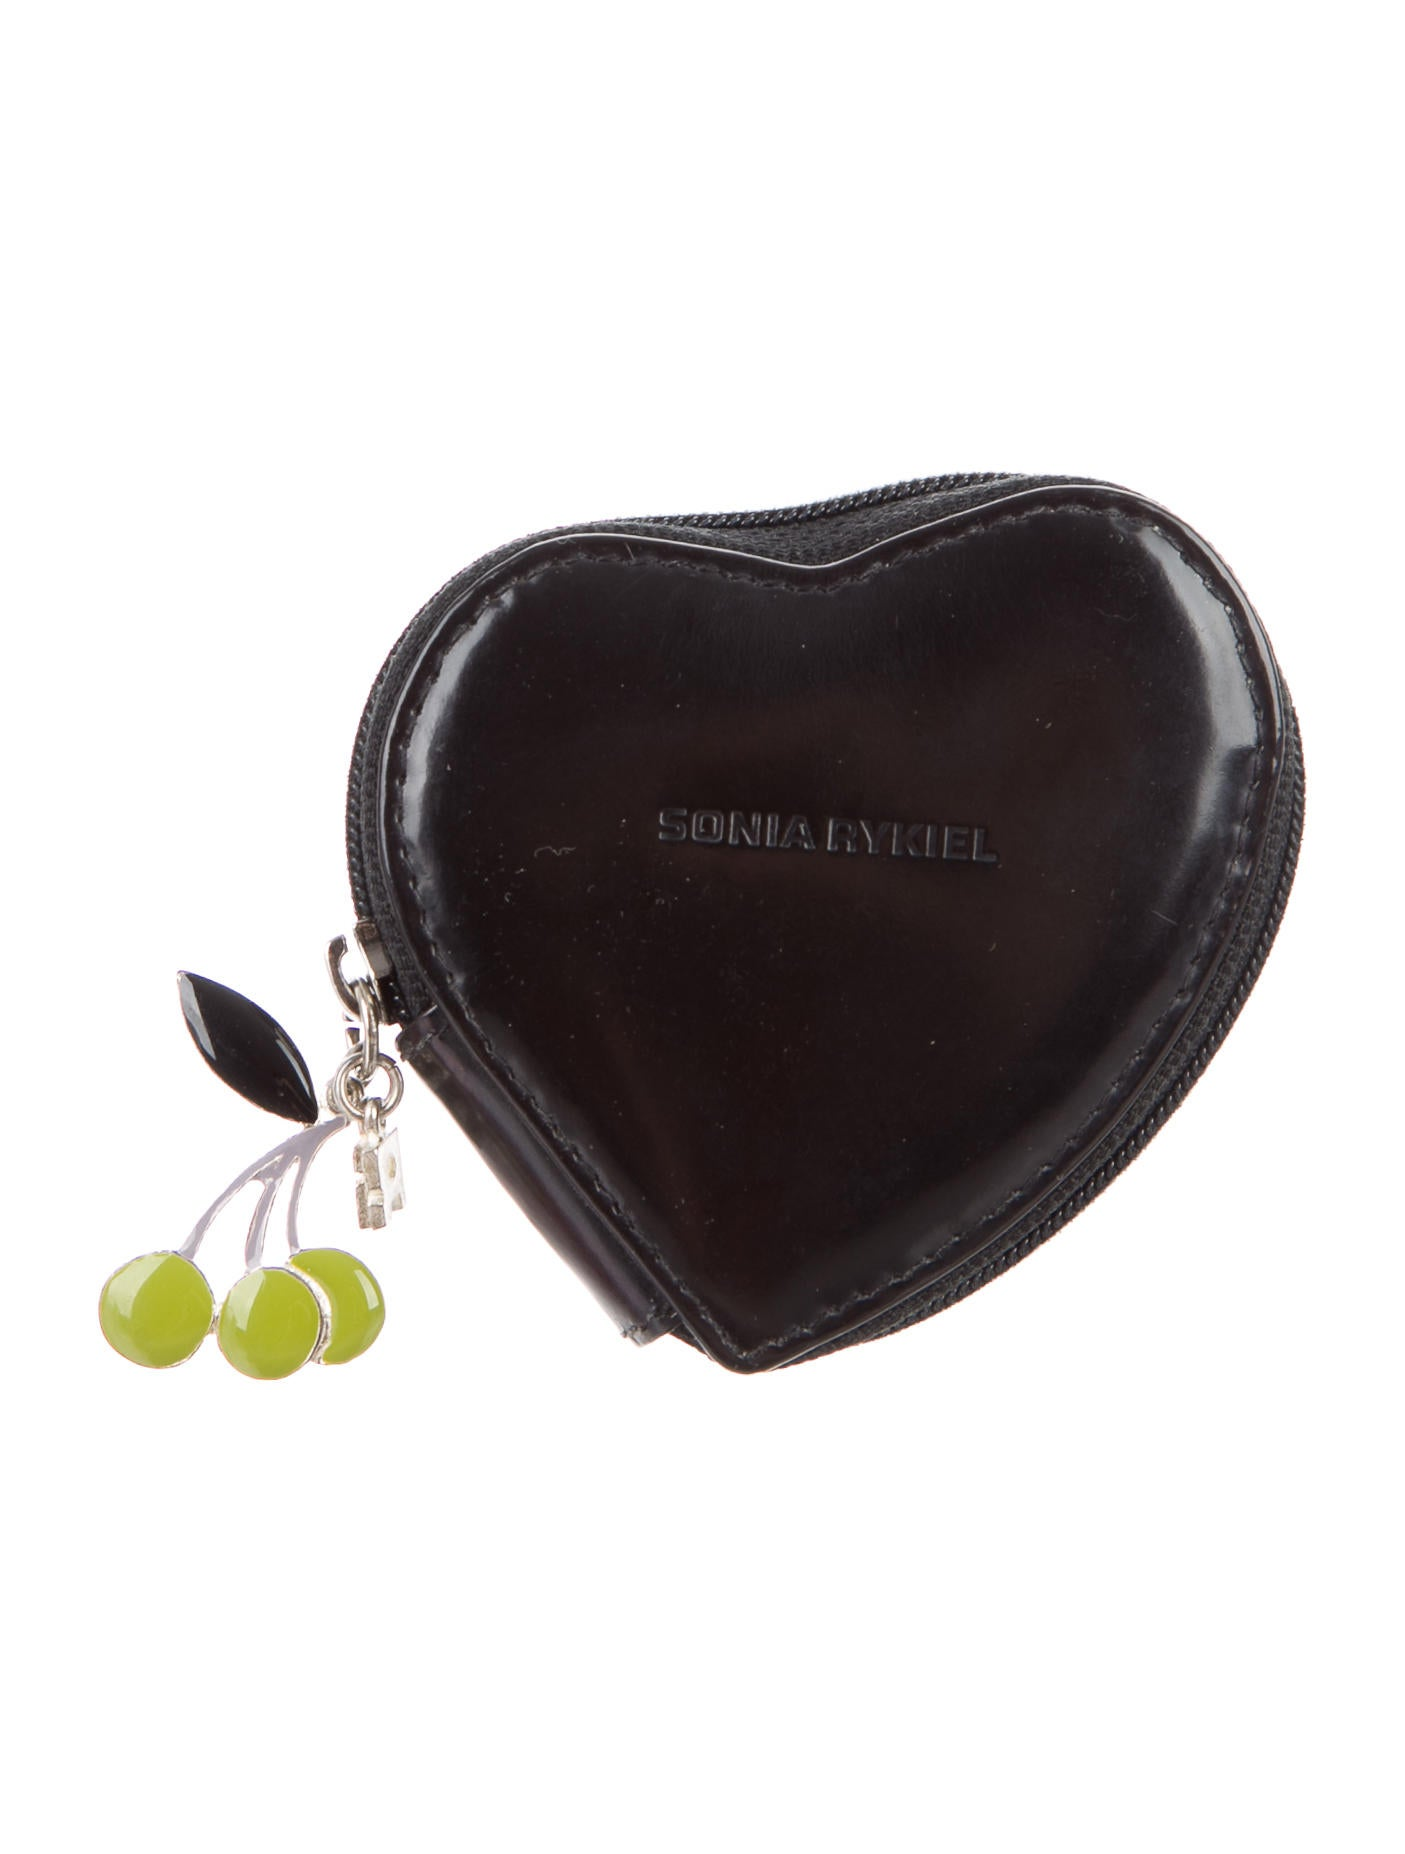 af3b846f6f Sonia Rykiel Leather Le Coin Purse Accessories Son23774 The